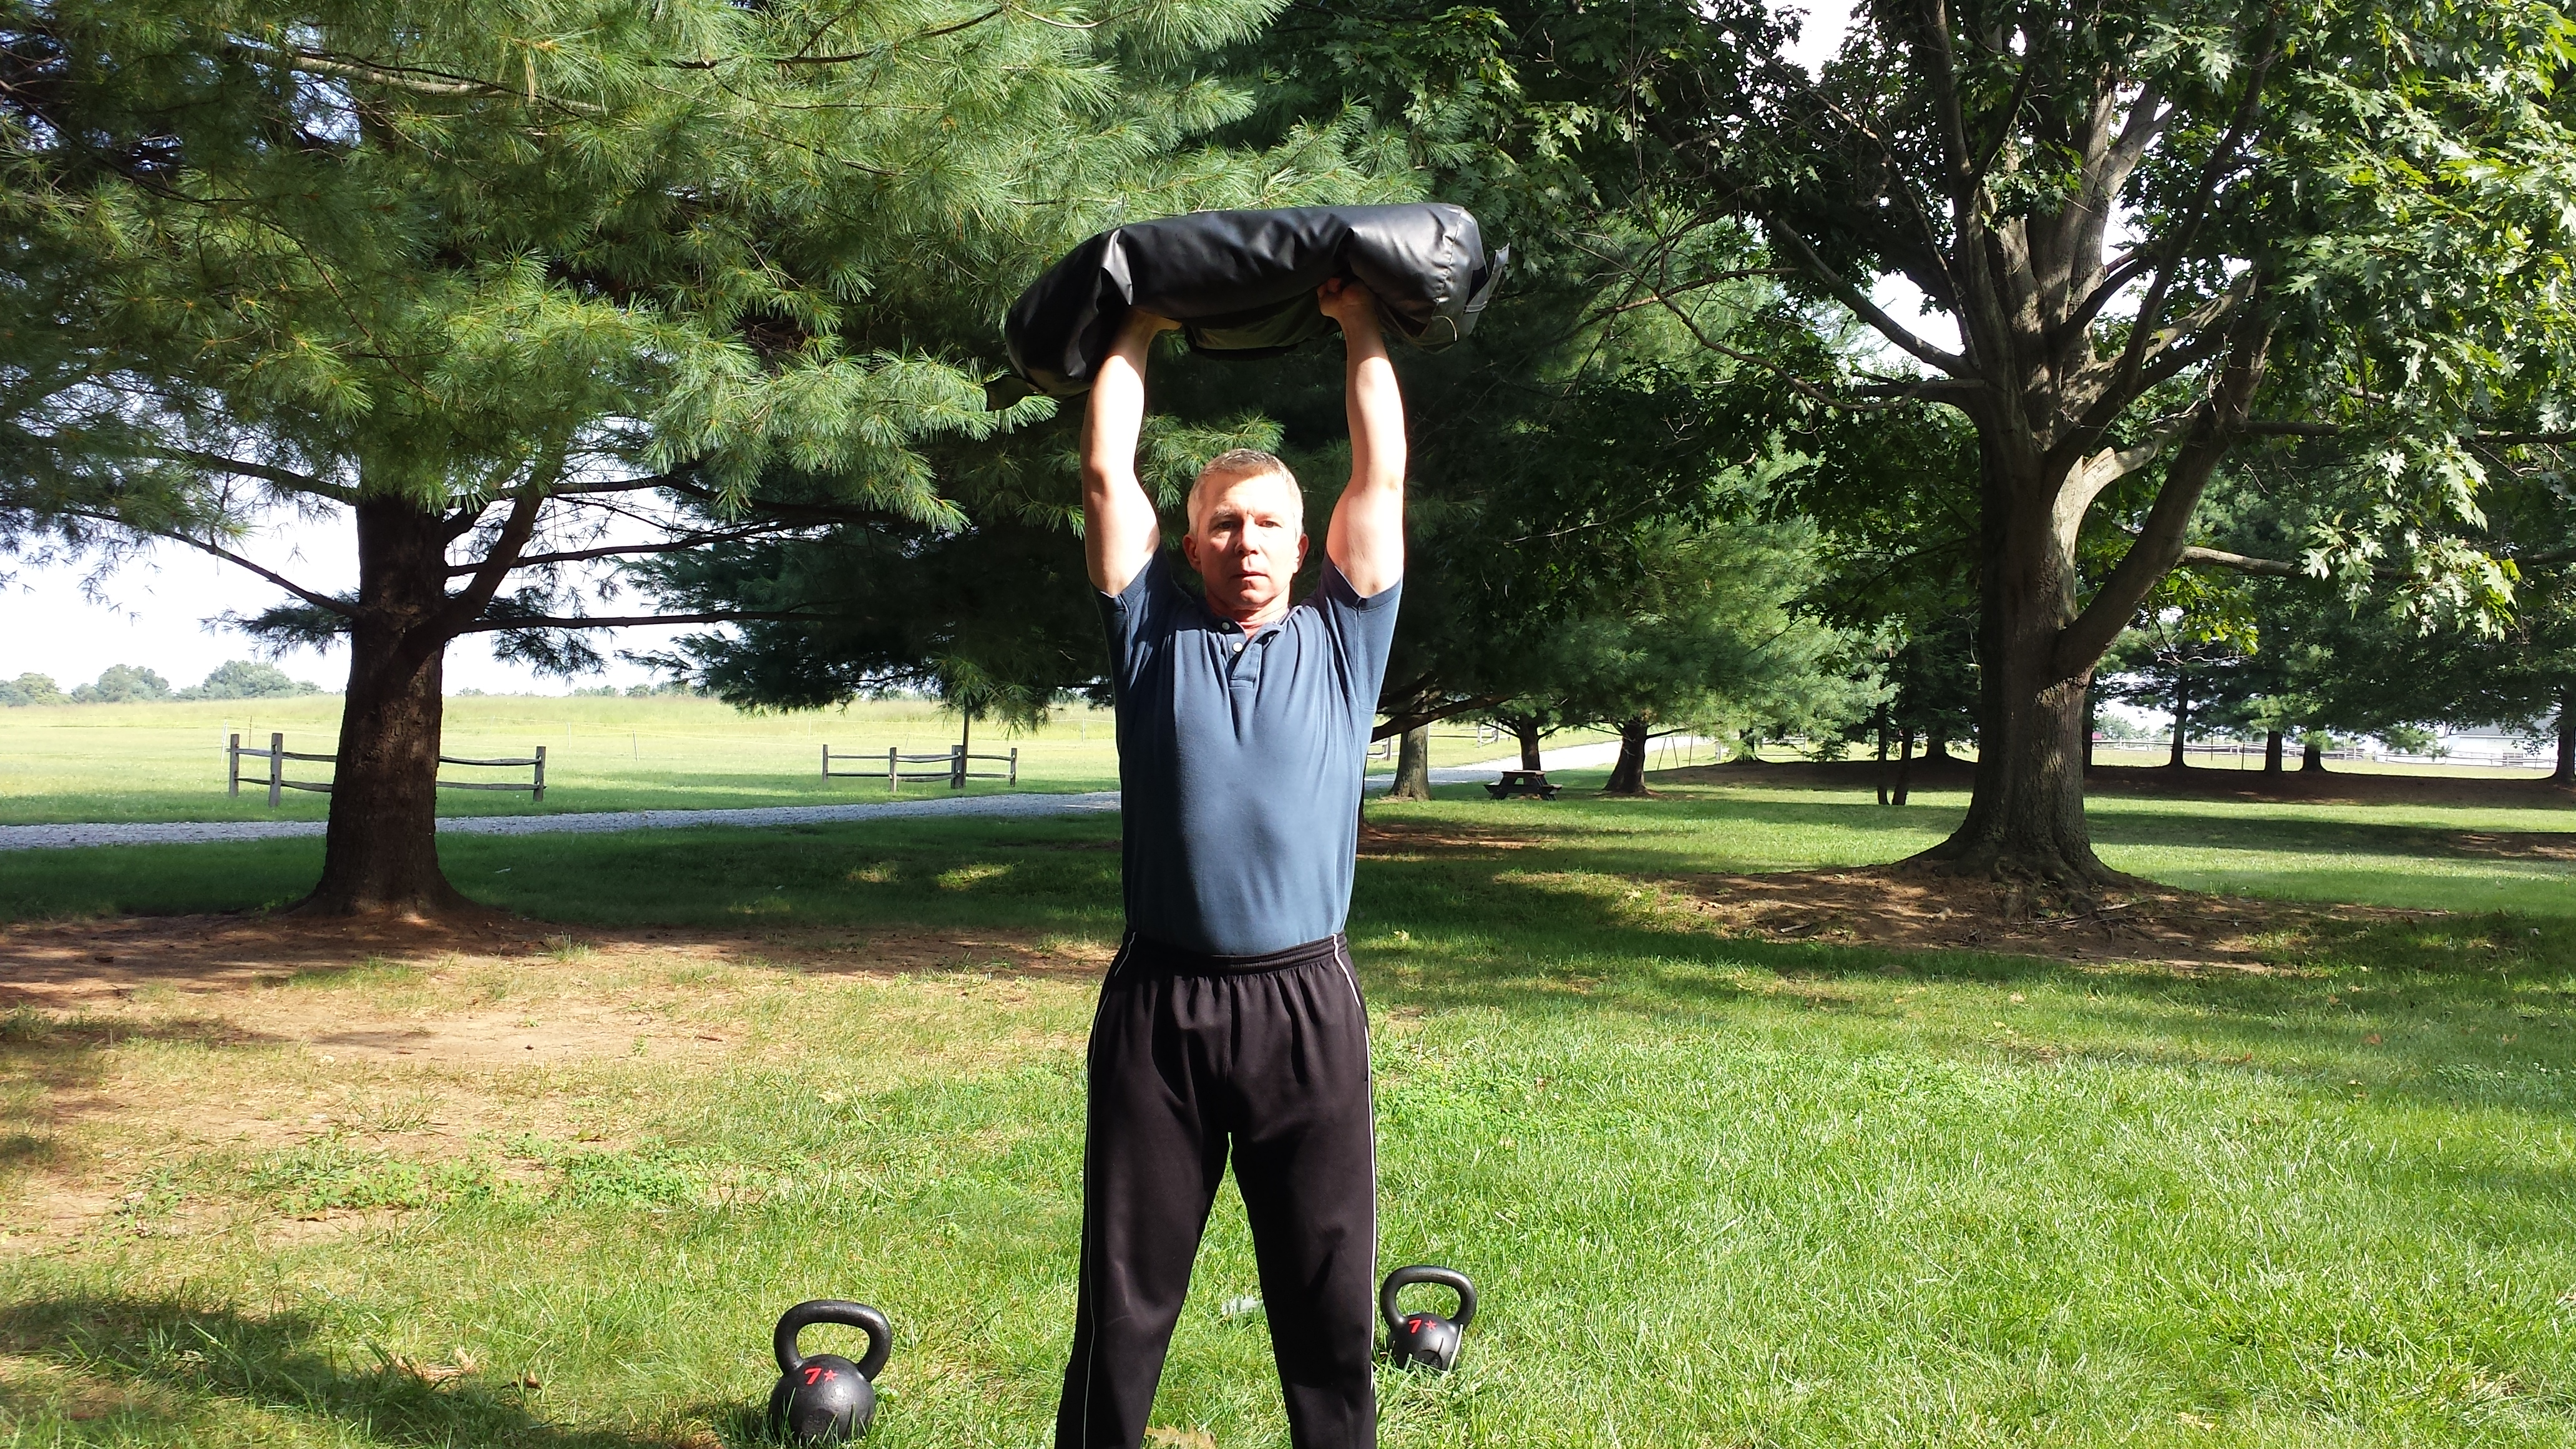 mark mellohusky mobility exercises ultimate sandbag exercises seven stars